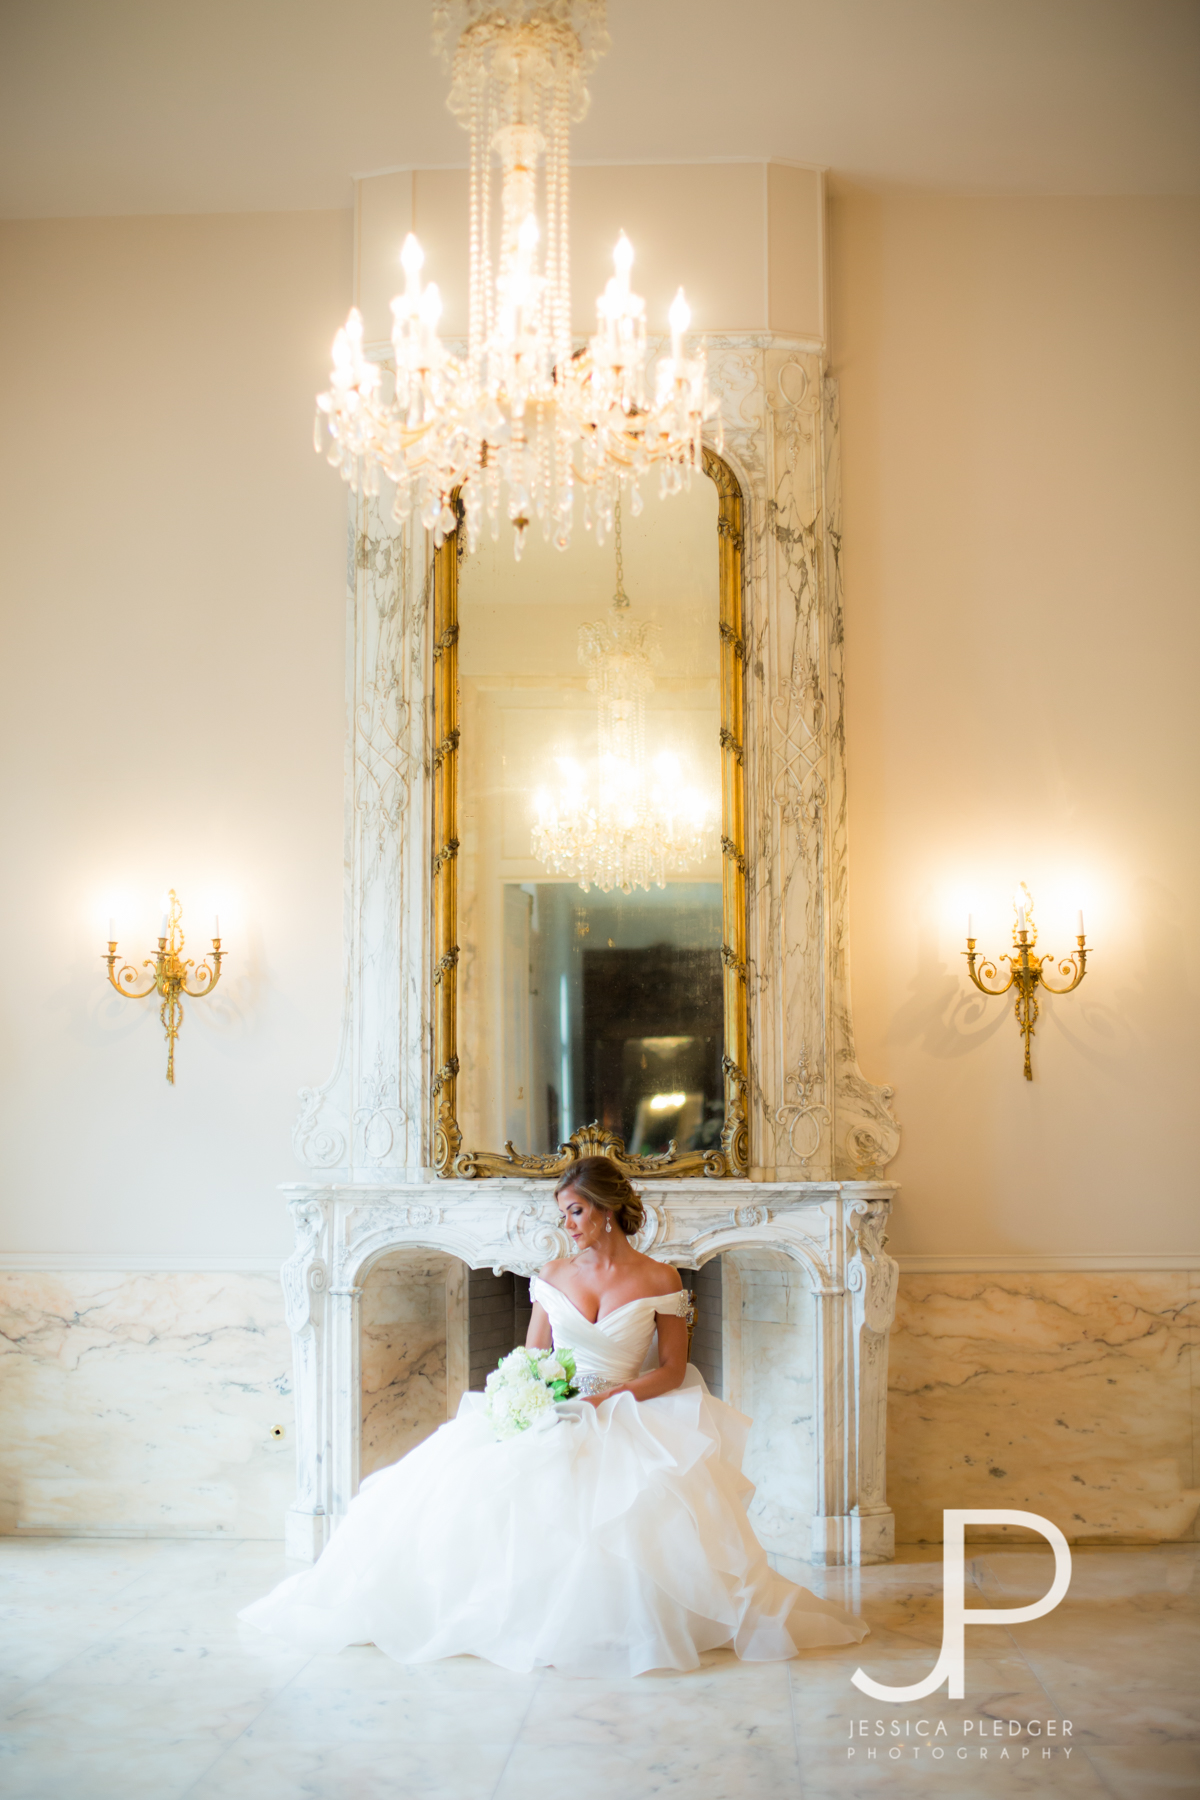 Chateau Cocomar Bridal Session by Jessica Pledger Photography